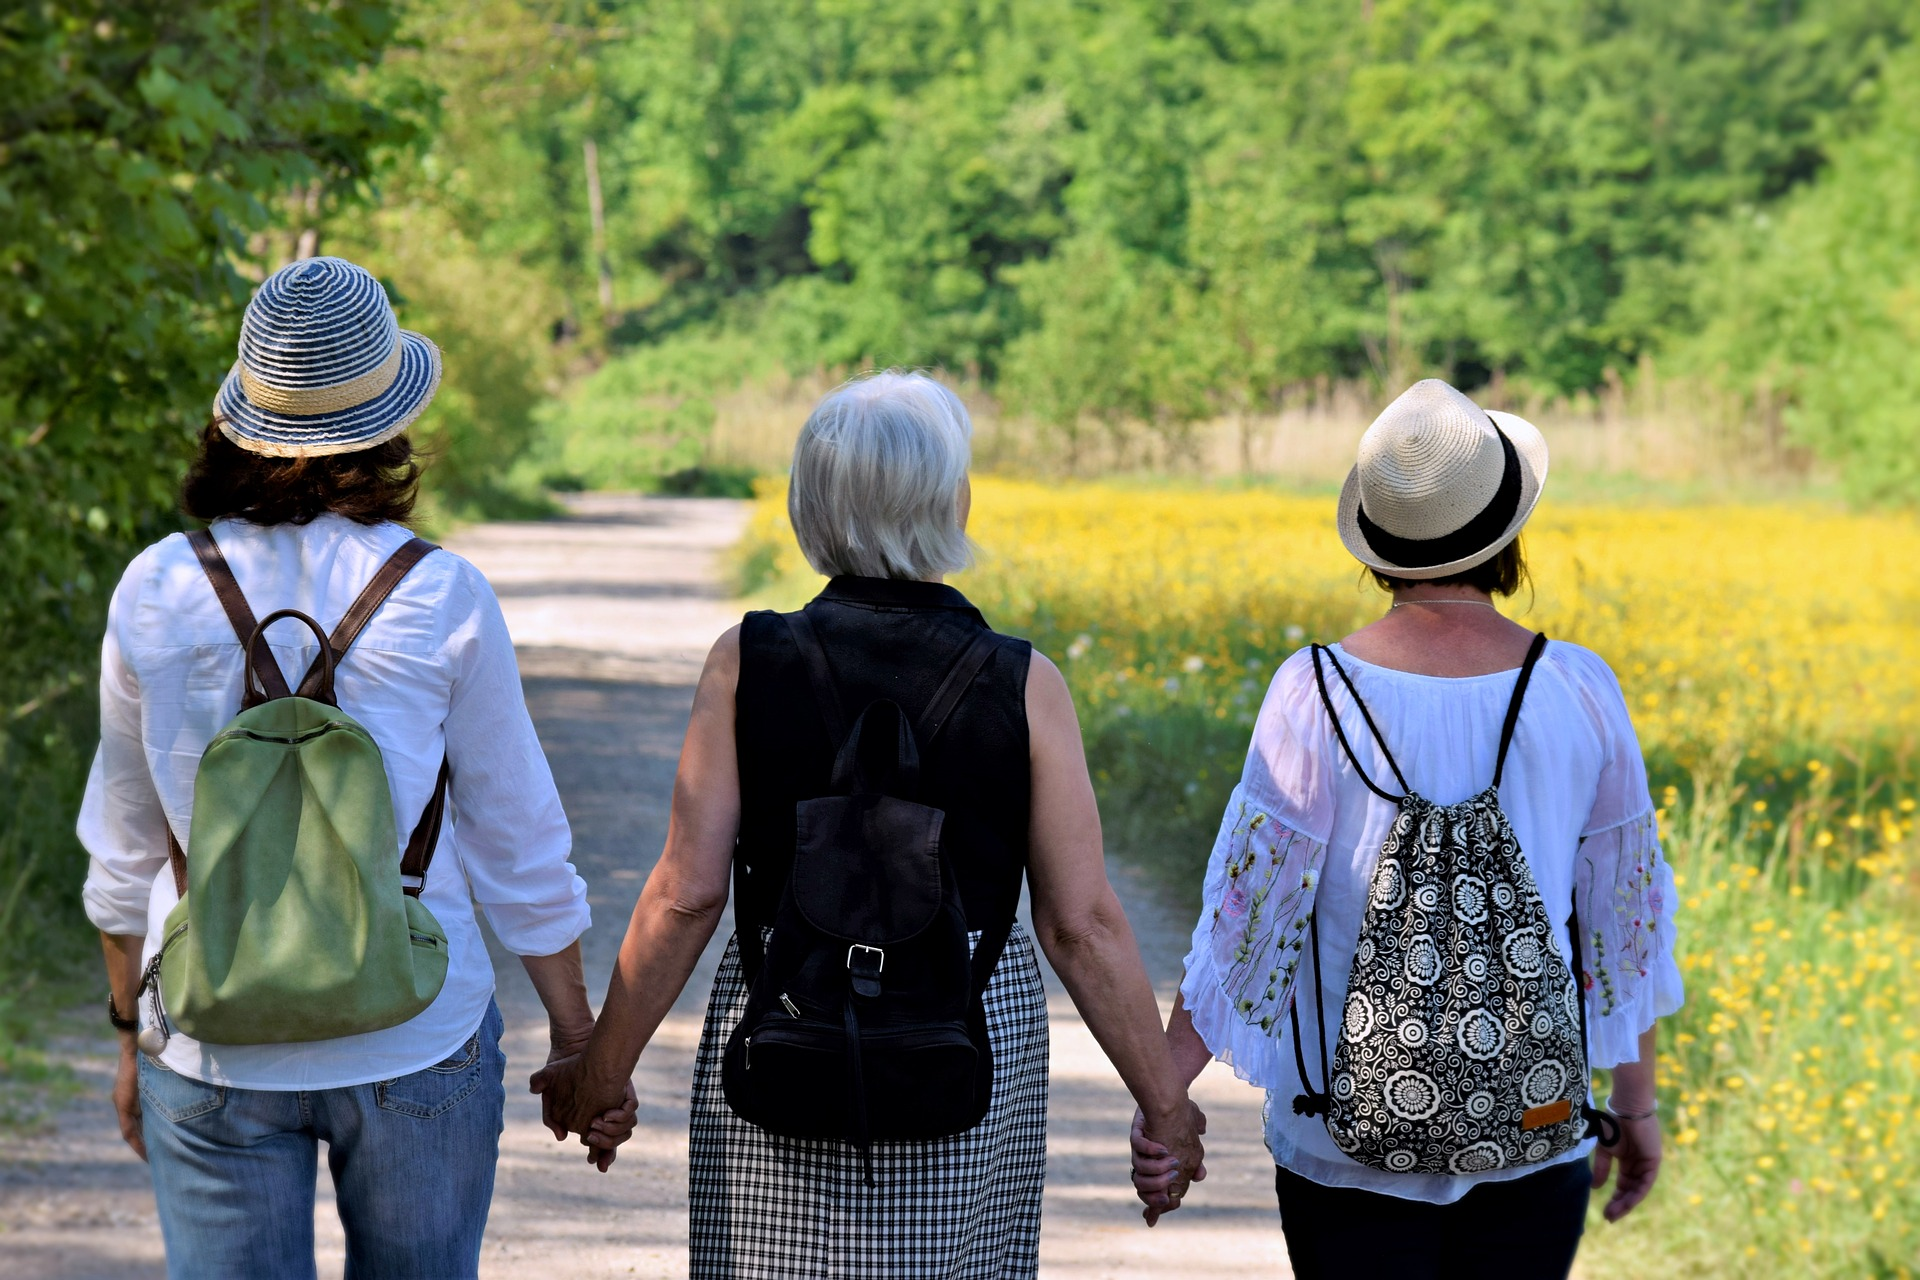 3 women of different ages walking away from the camera down a wooded path